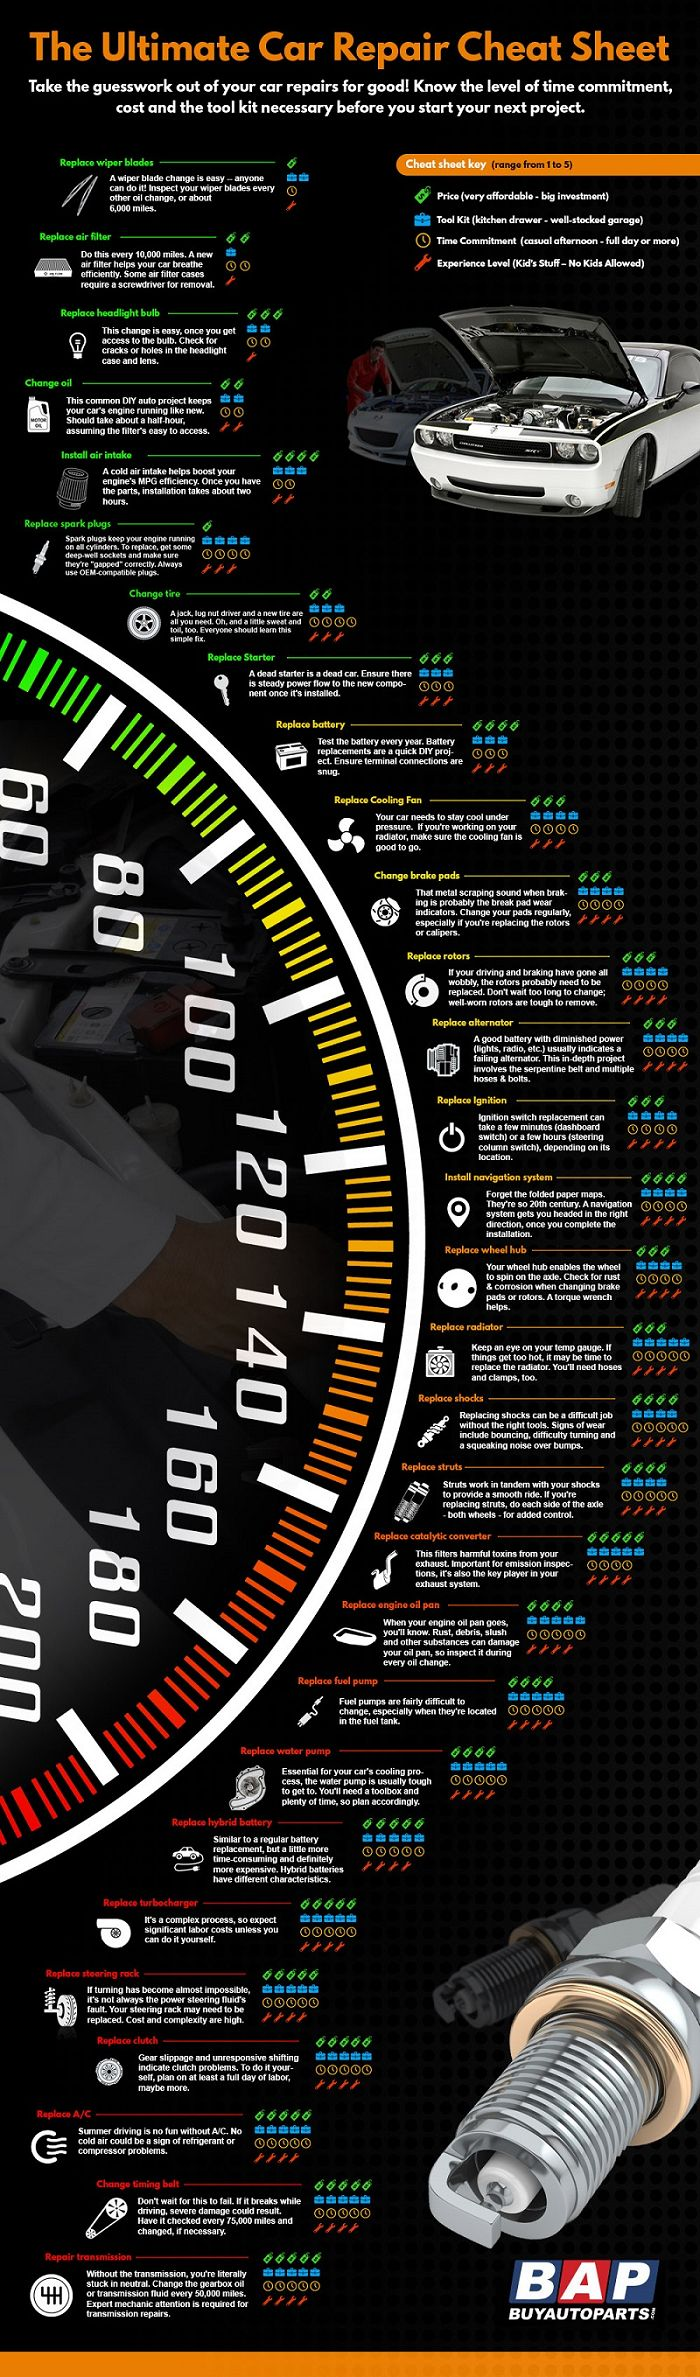 Infographic: The Ultimate Car Repair Cheat Sheet